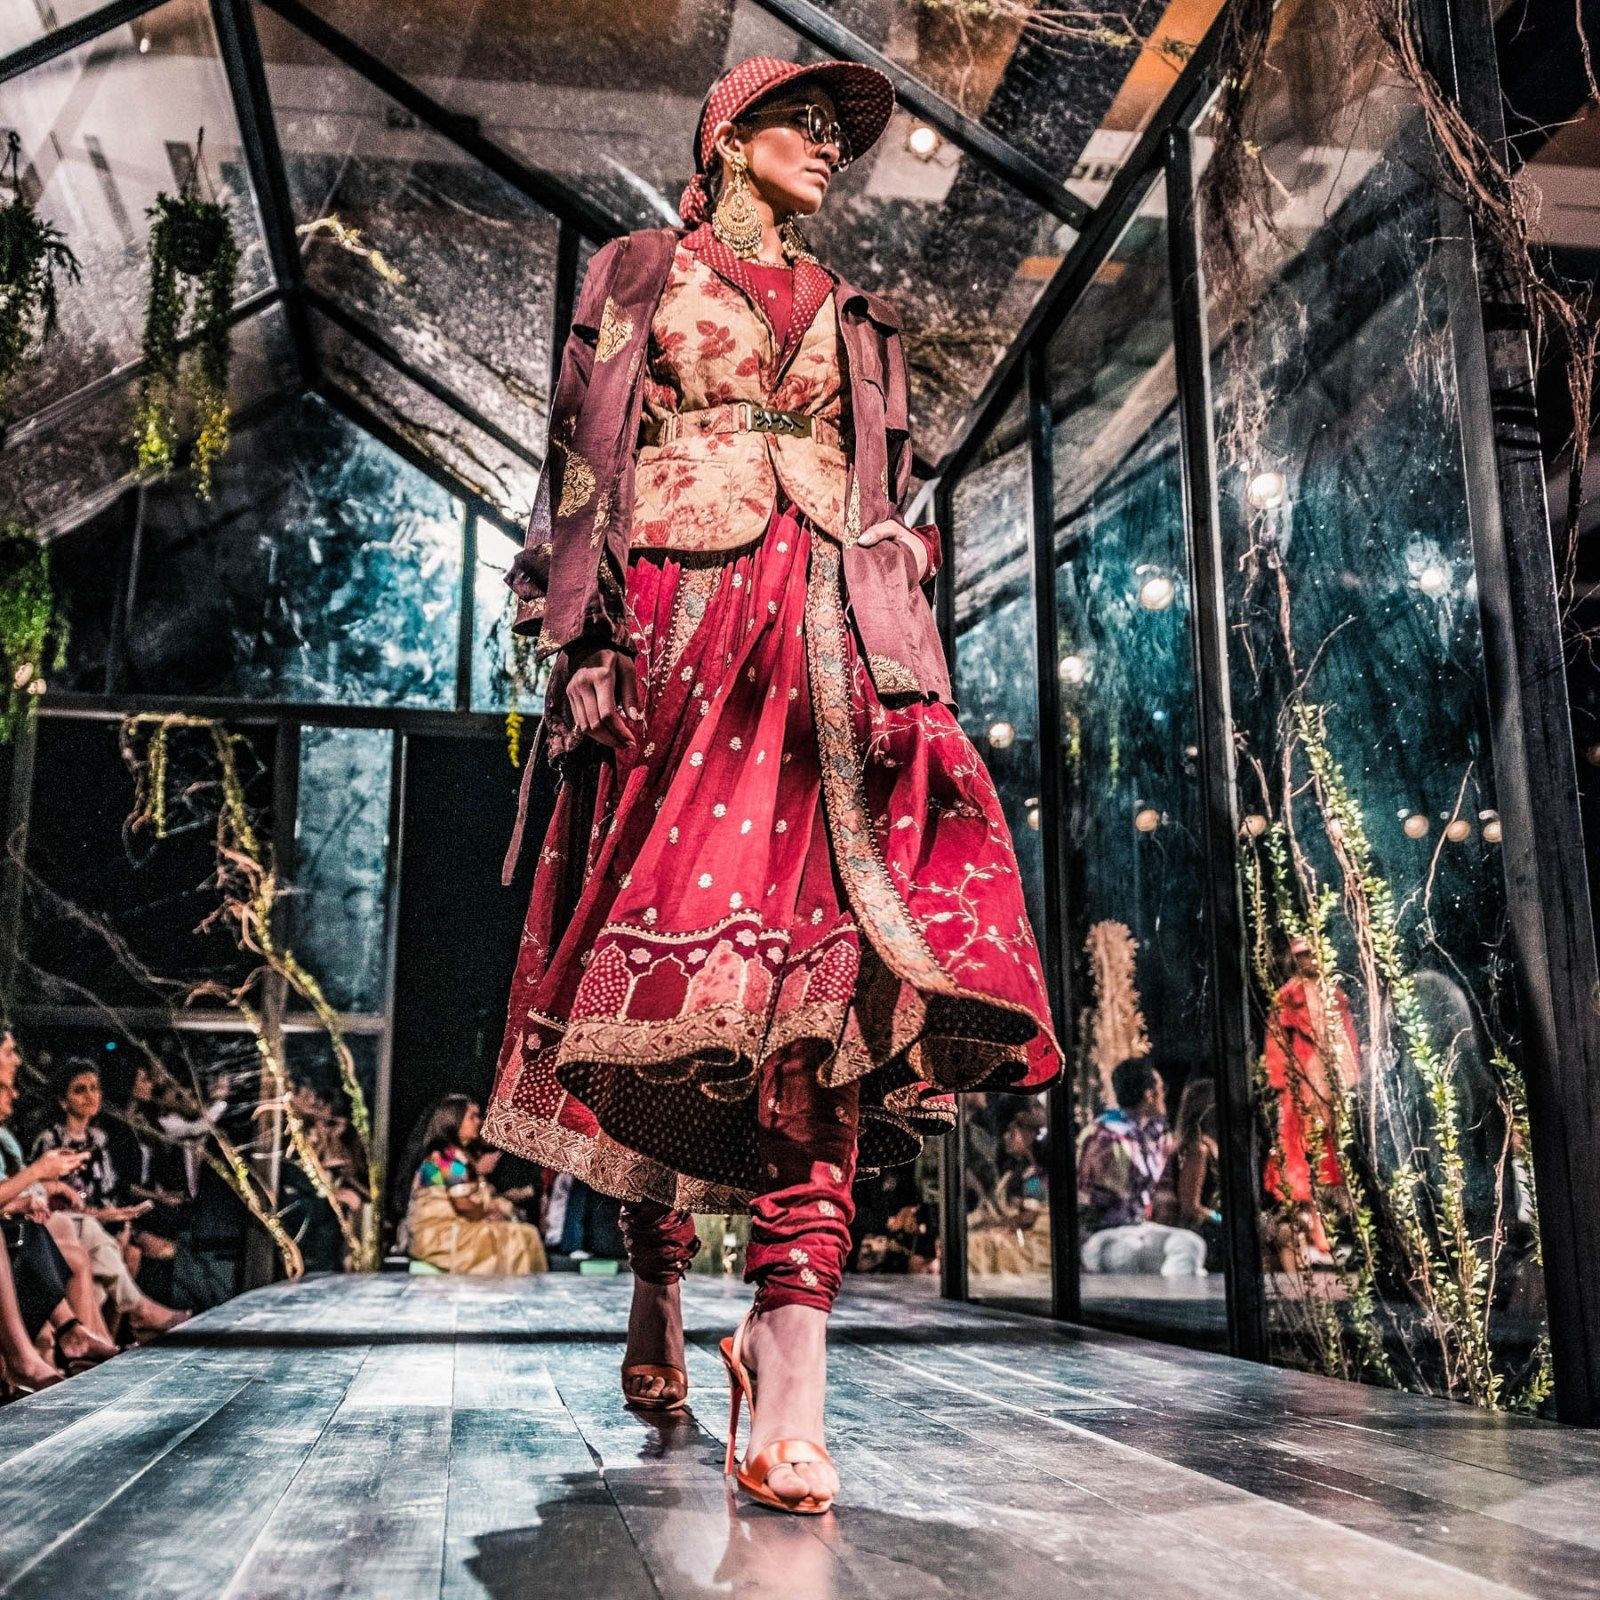 20 Years Of Sabyasachi Photography Assignment 20yearsofsabyasachi In 2020 Sabyasachi Photography Assignments Indian Fashion Designers